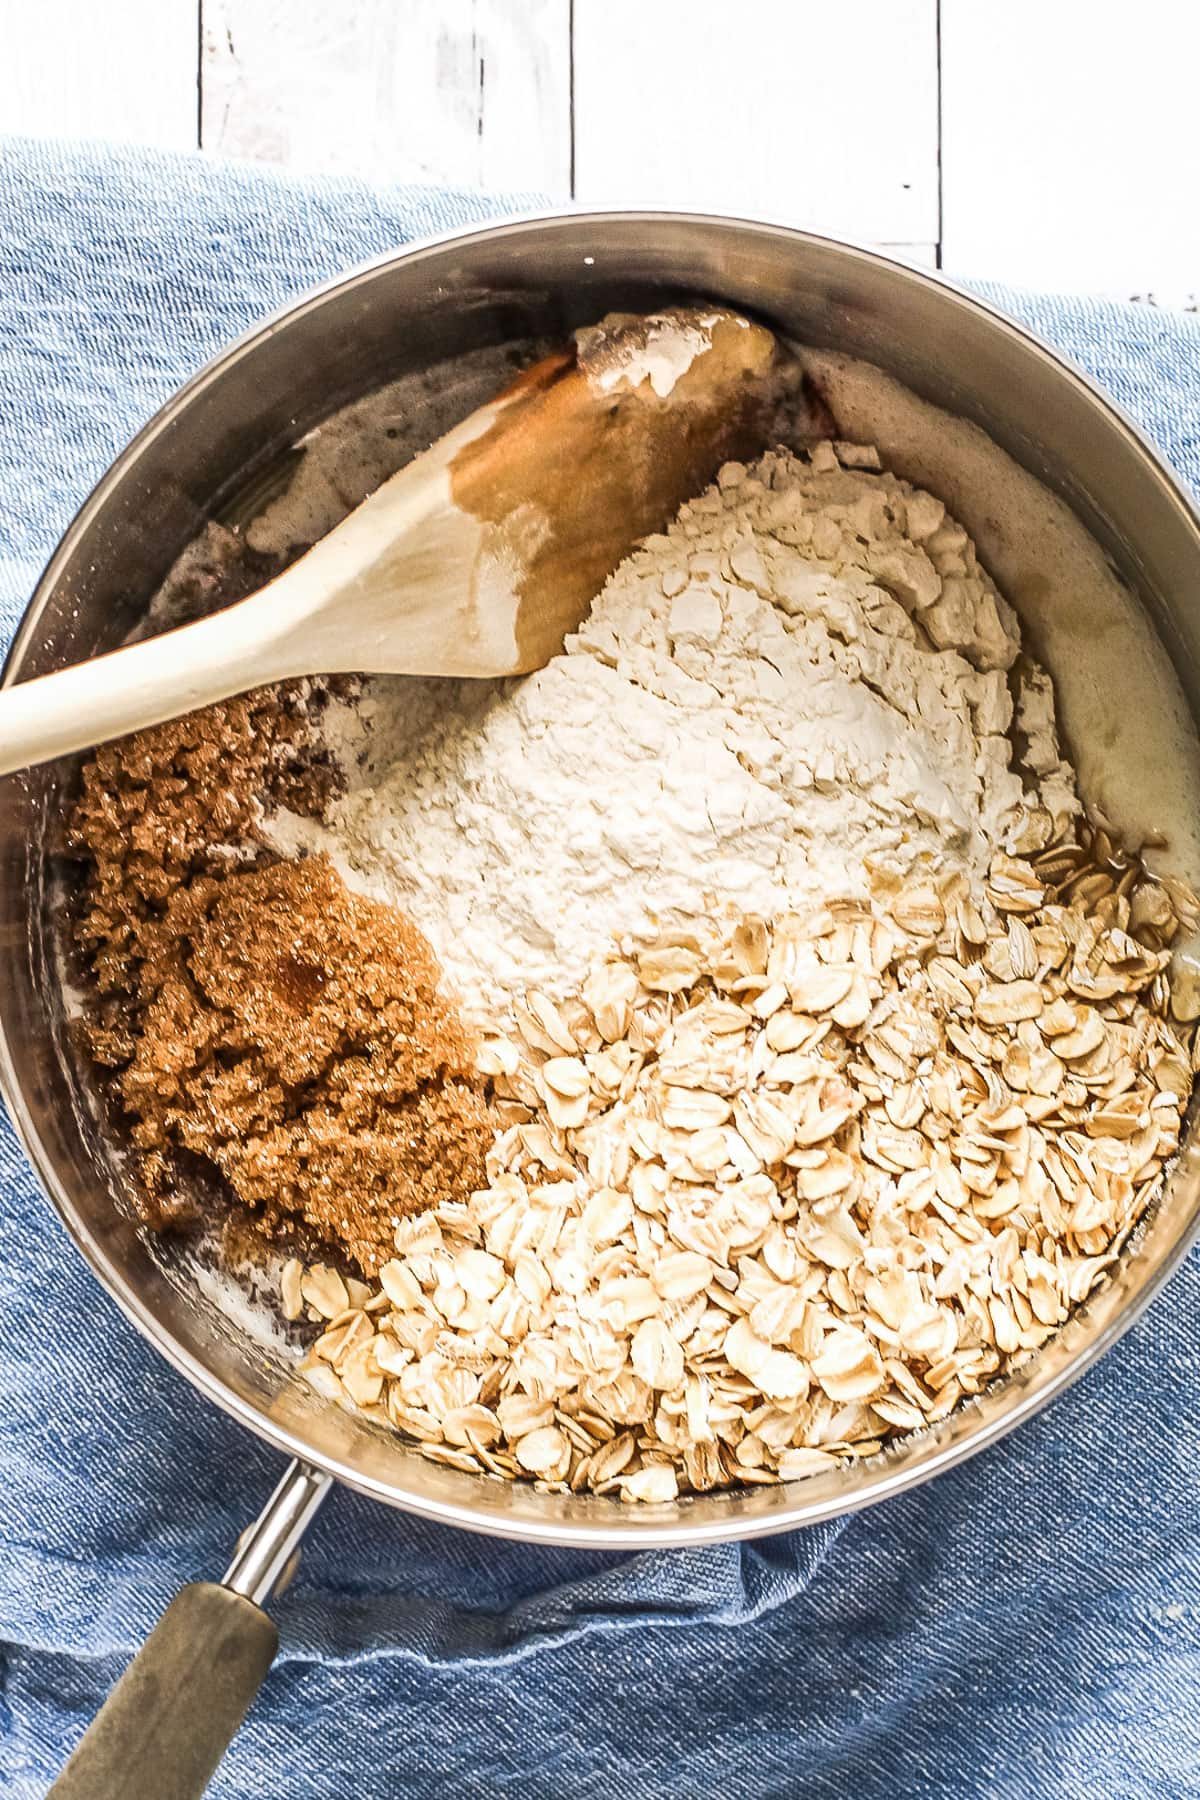 Ingredients for crumble topping being made directly in the pan.